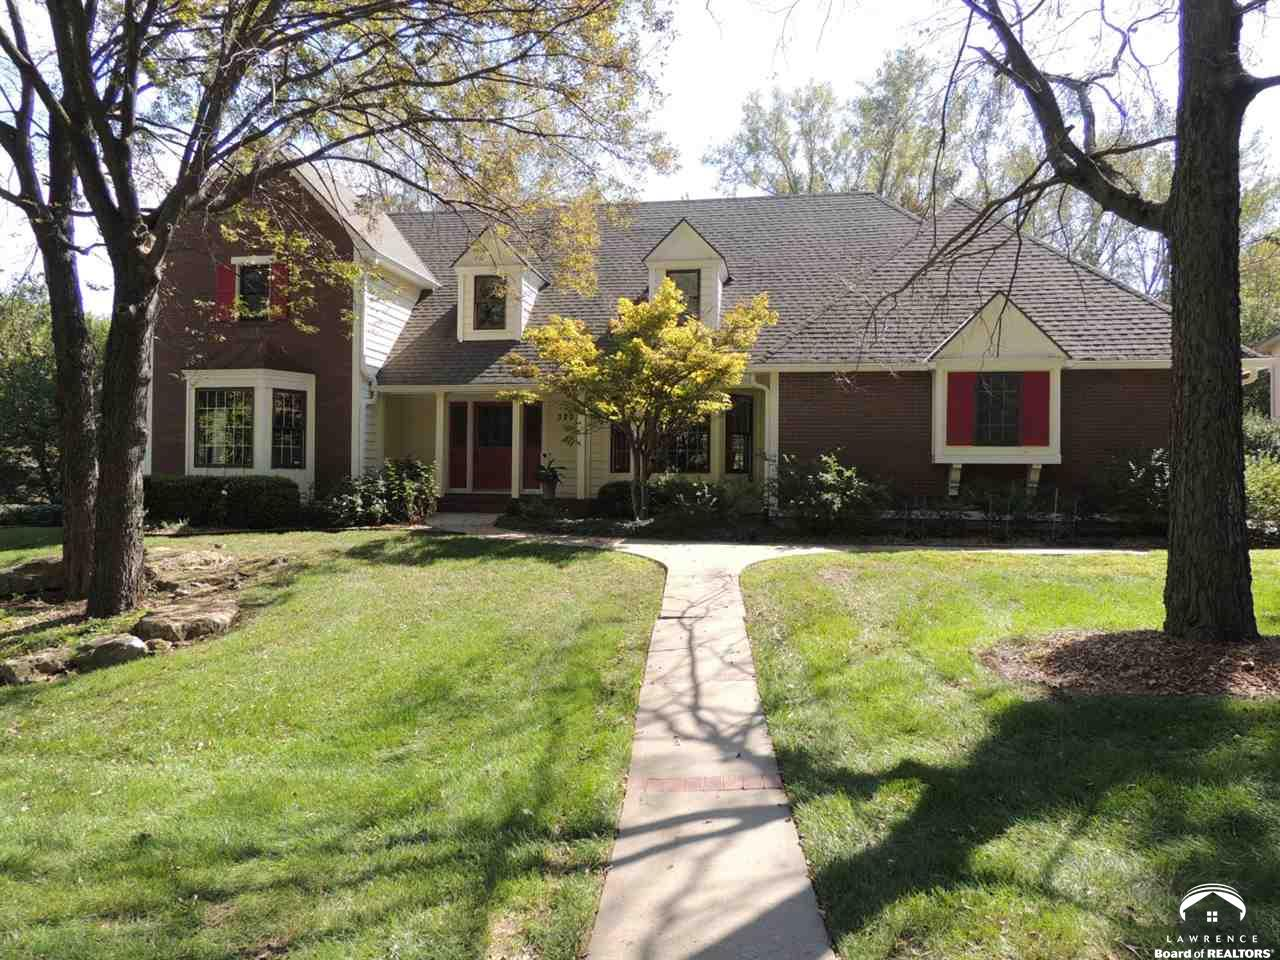 3201 Riverview Rd, Lawrence, KS 66049